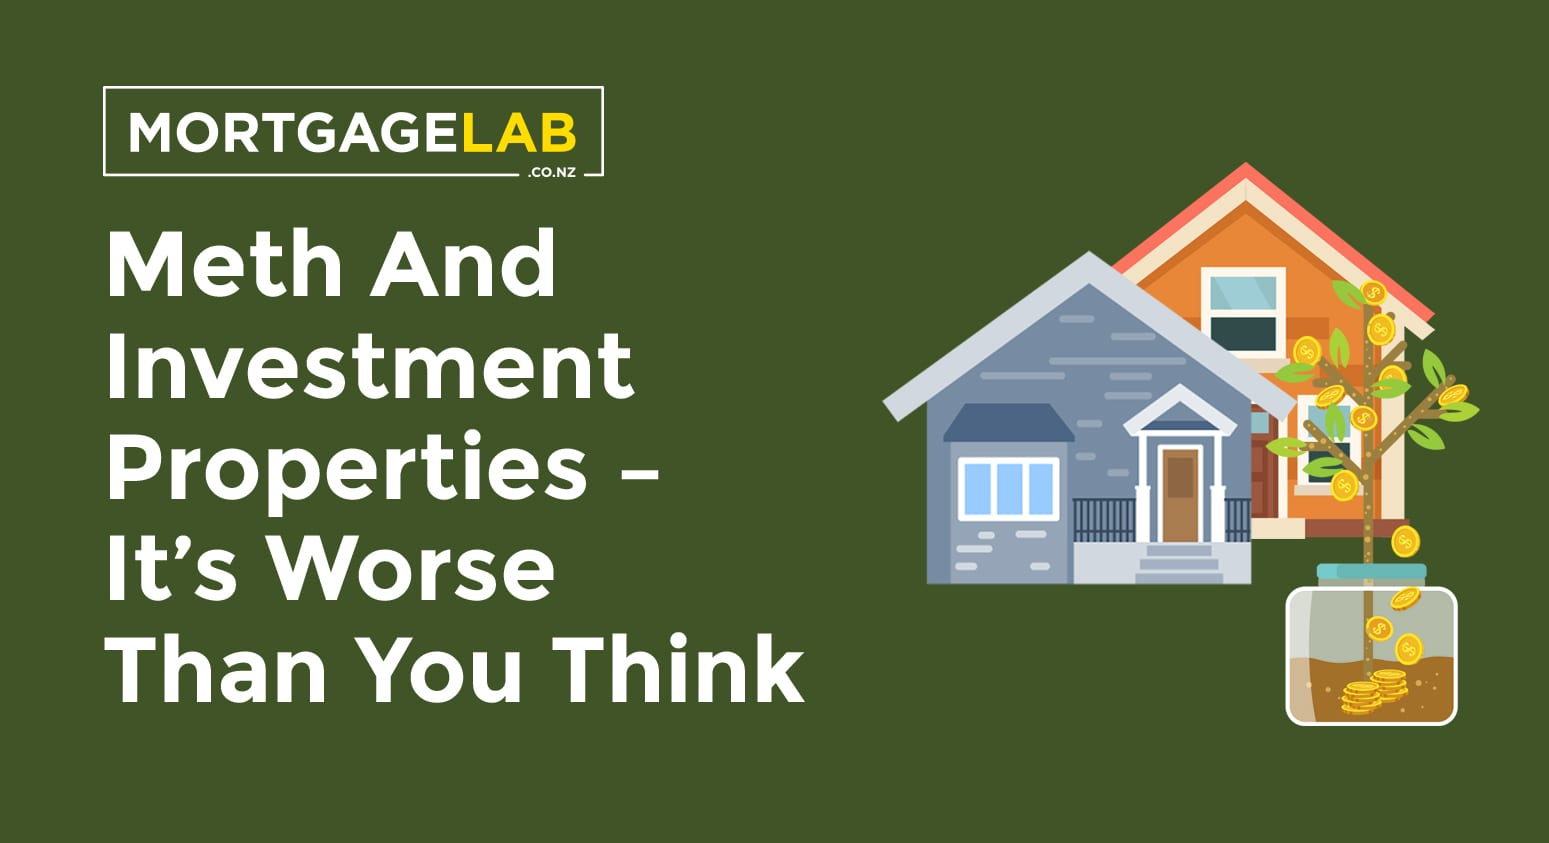 Meth and investment properties - it's worse than you think